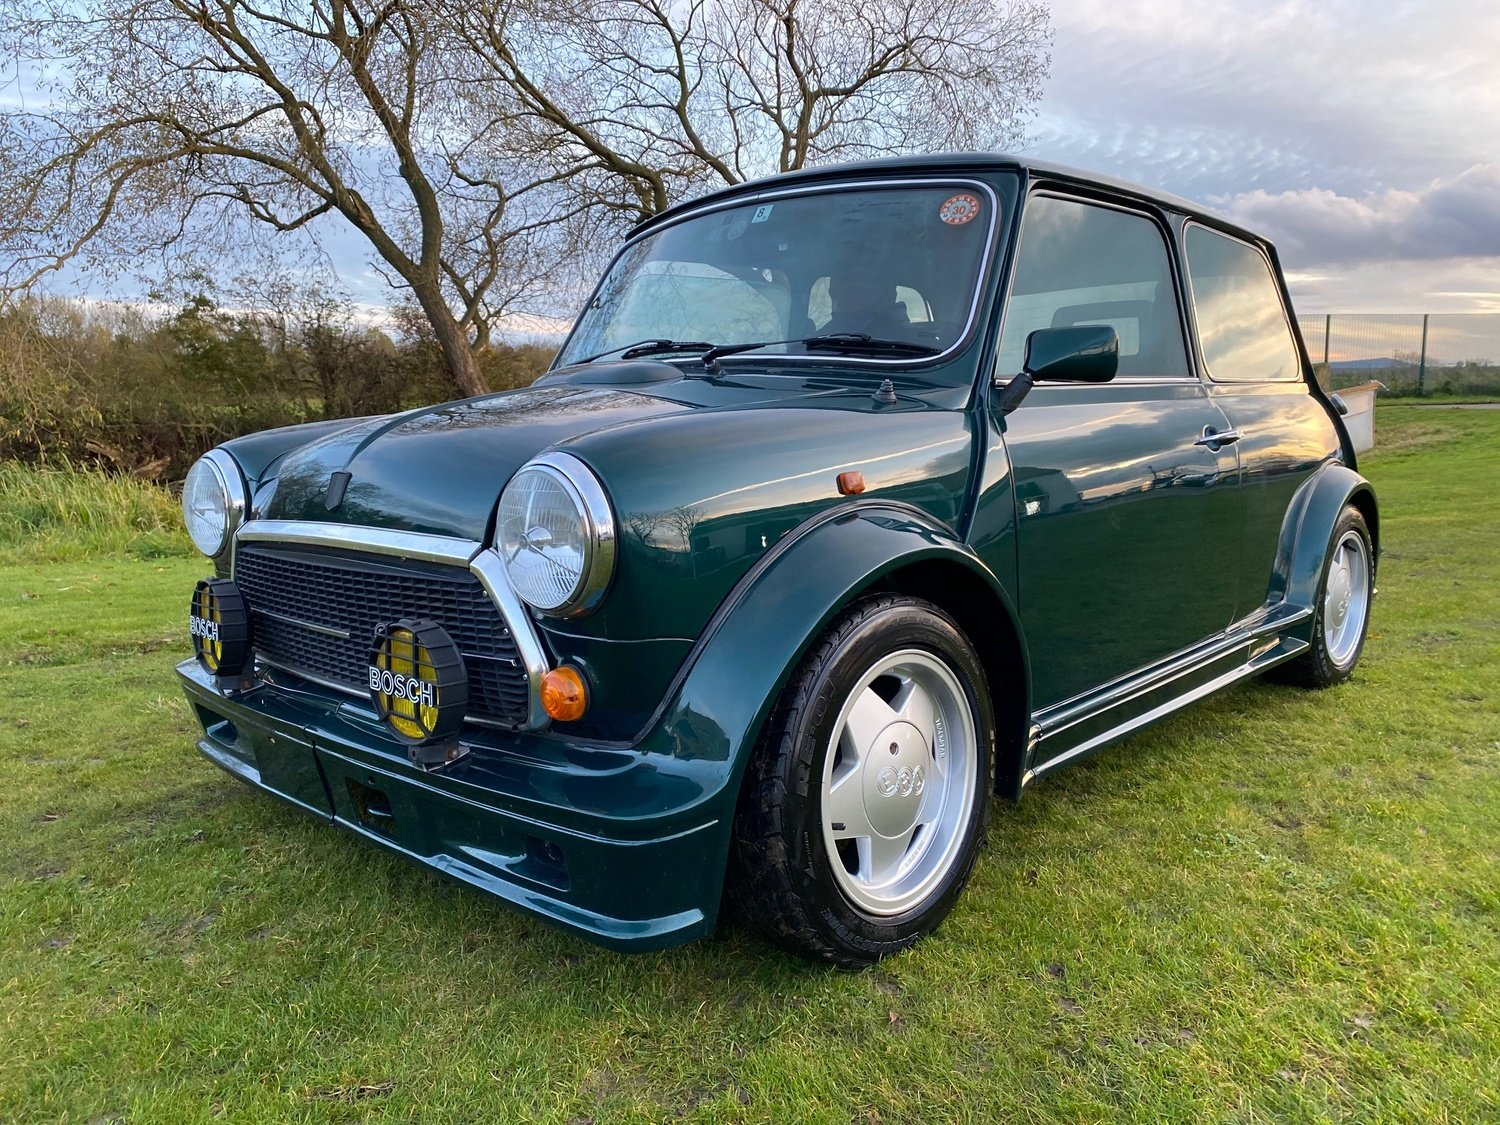 1992 ROVER MINI ERA TURBO VERY RARE VEHICLE * ONE OF ONLY 436 * For Sale (picture 1 of 6)